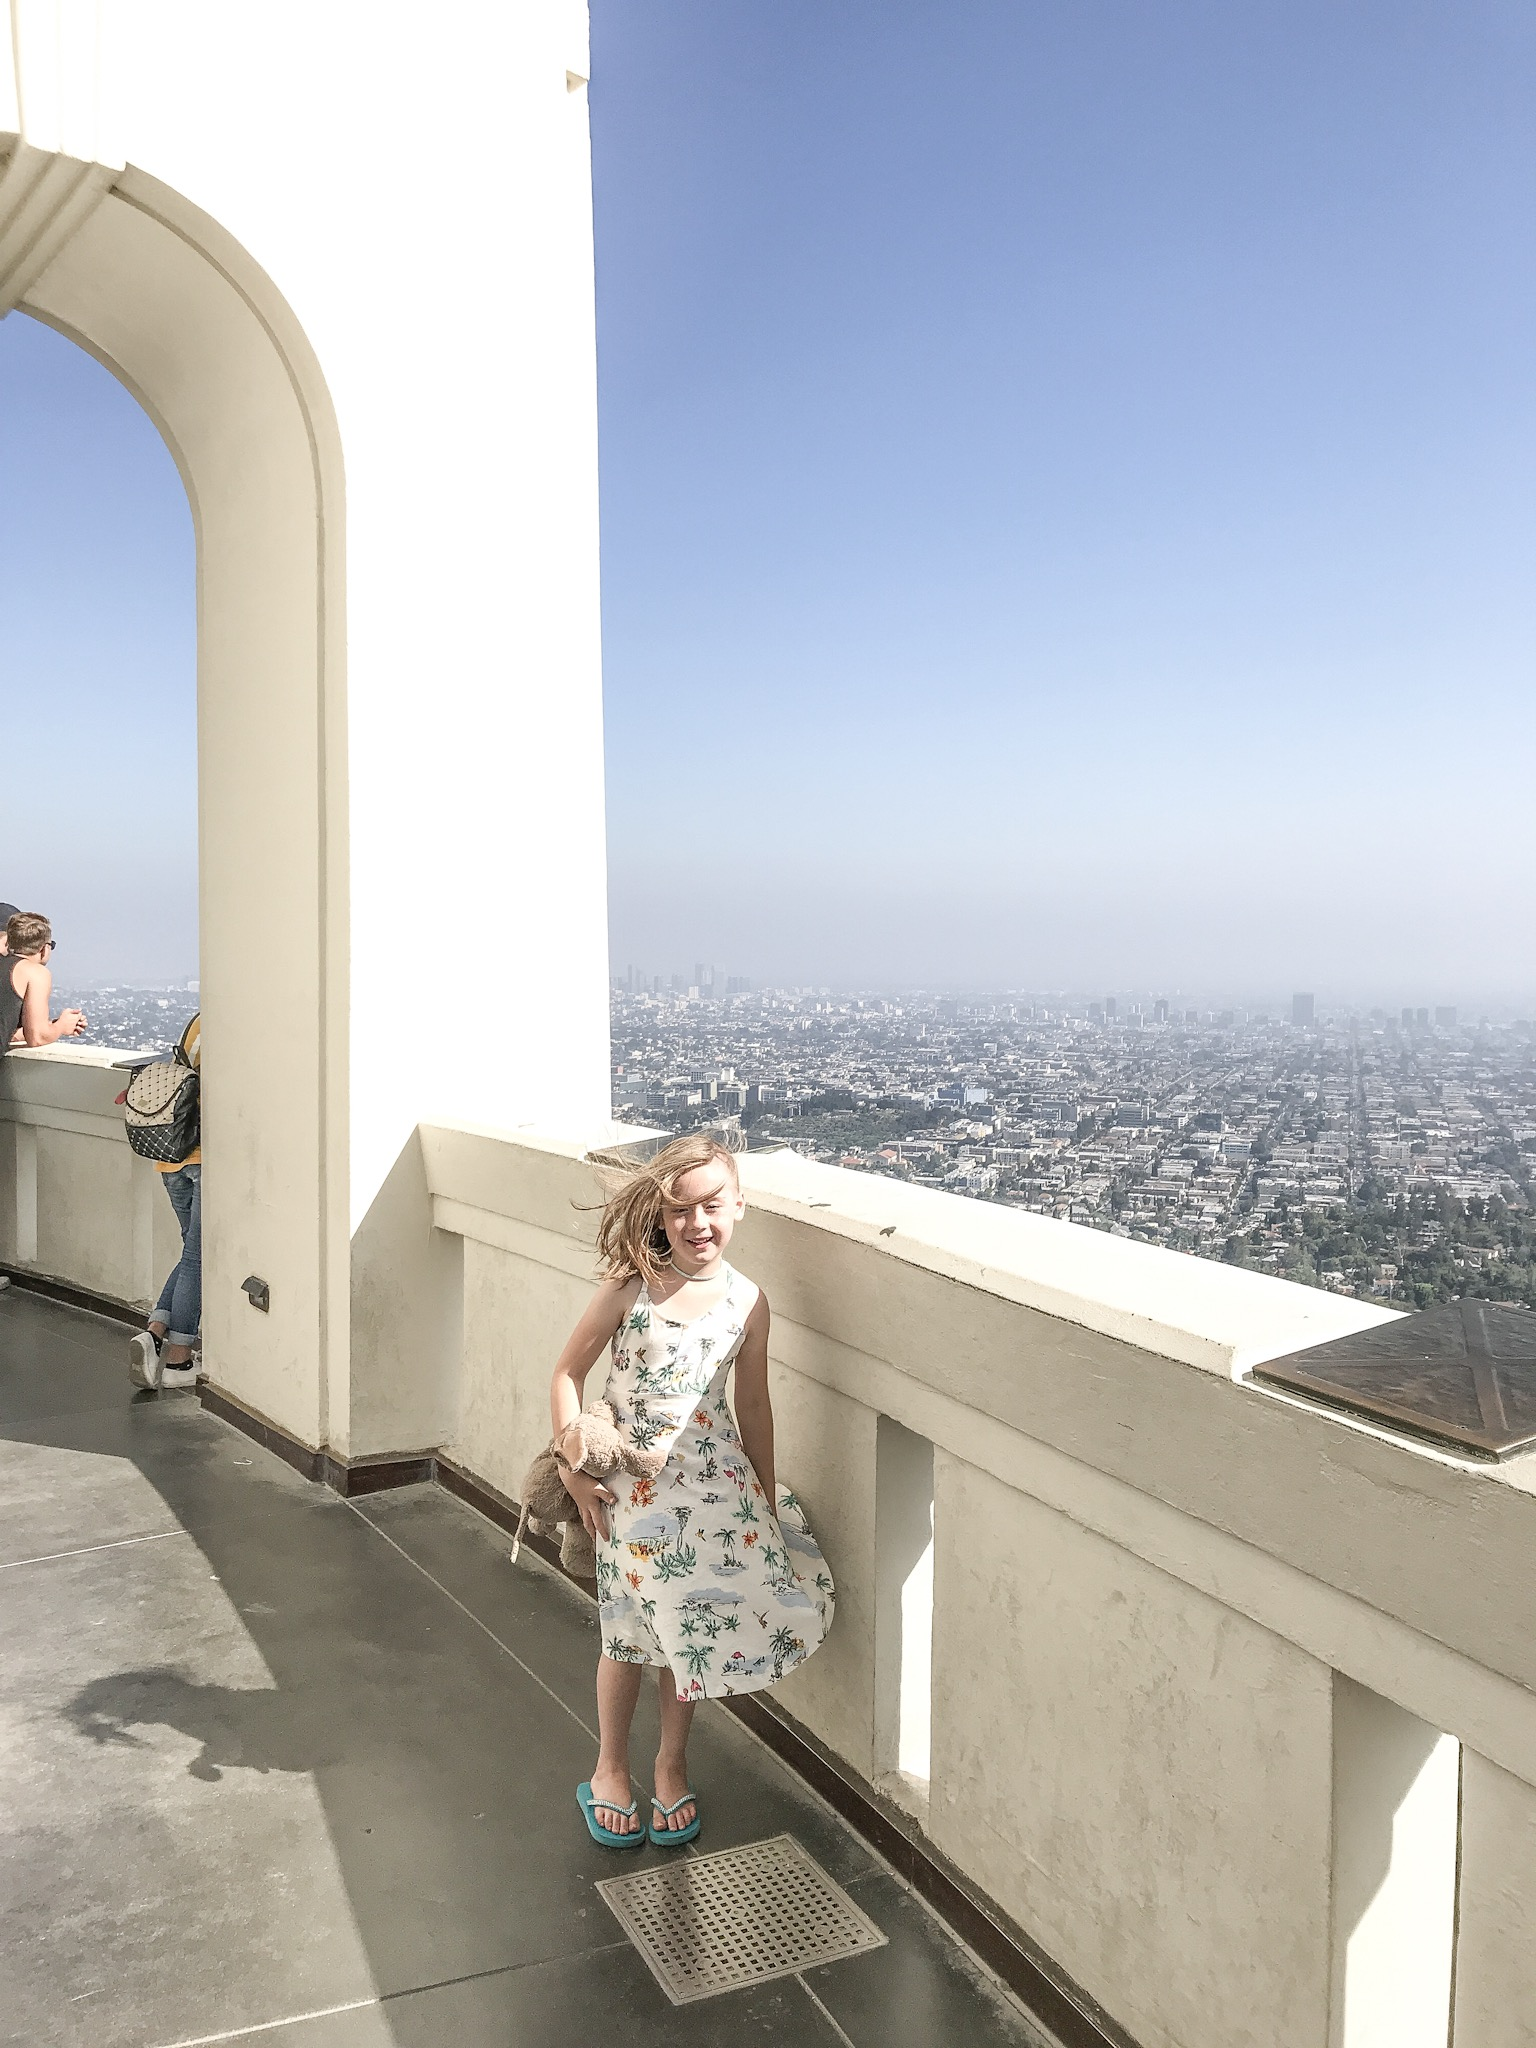 Having a Marilyn moment at Griffith Observatory.